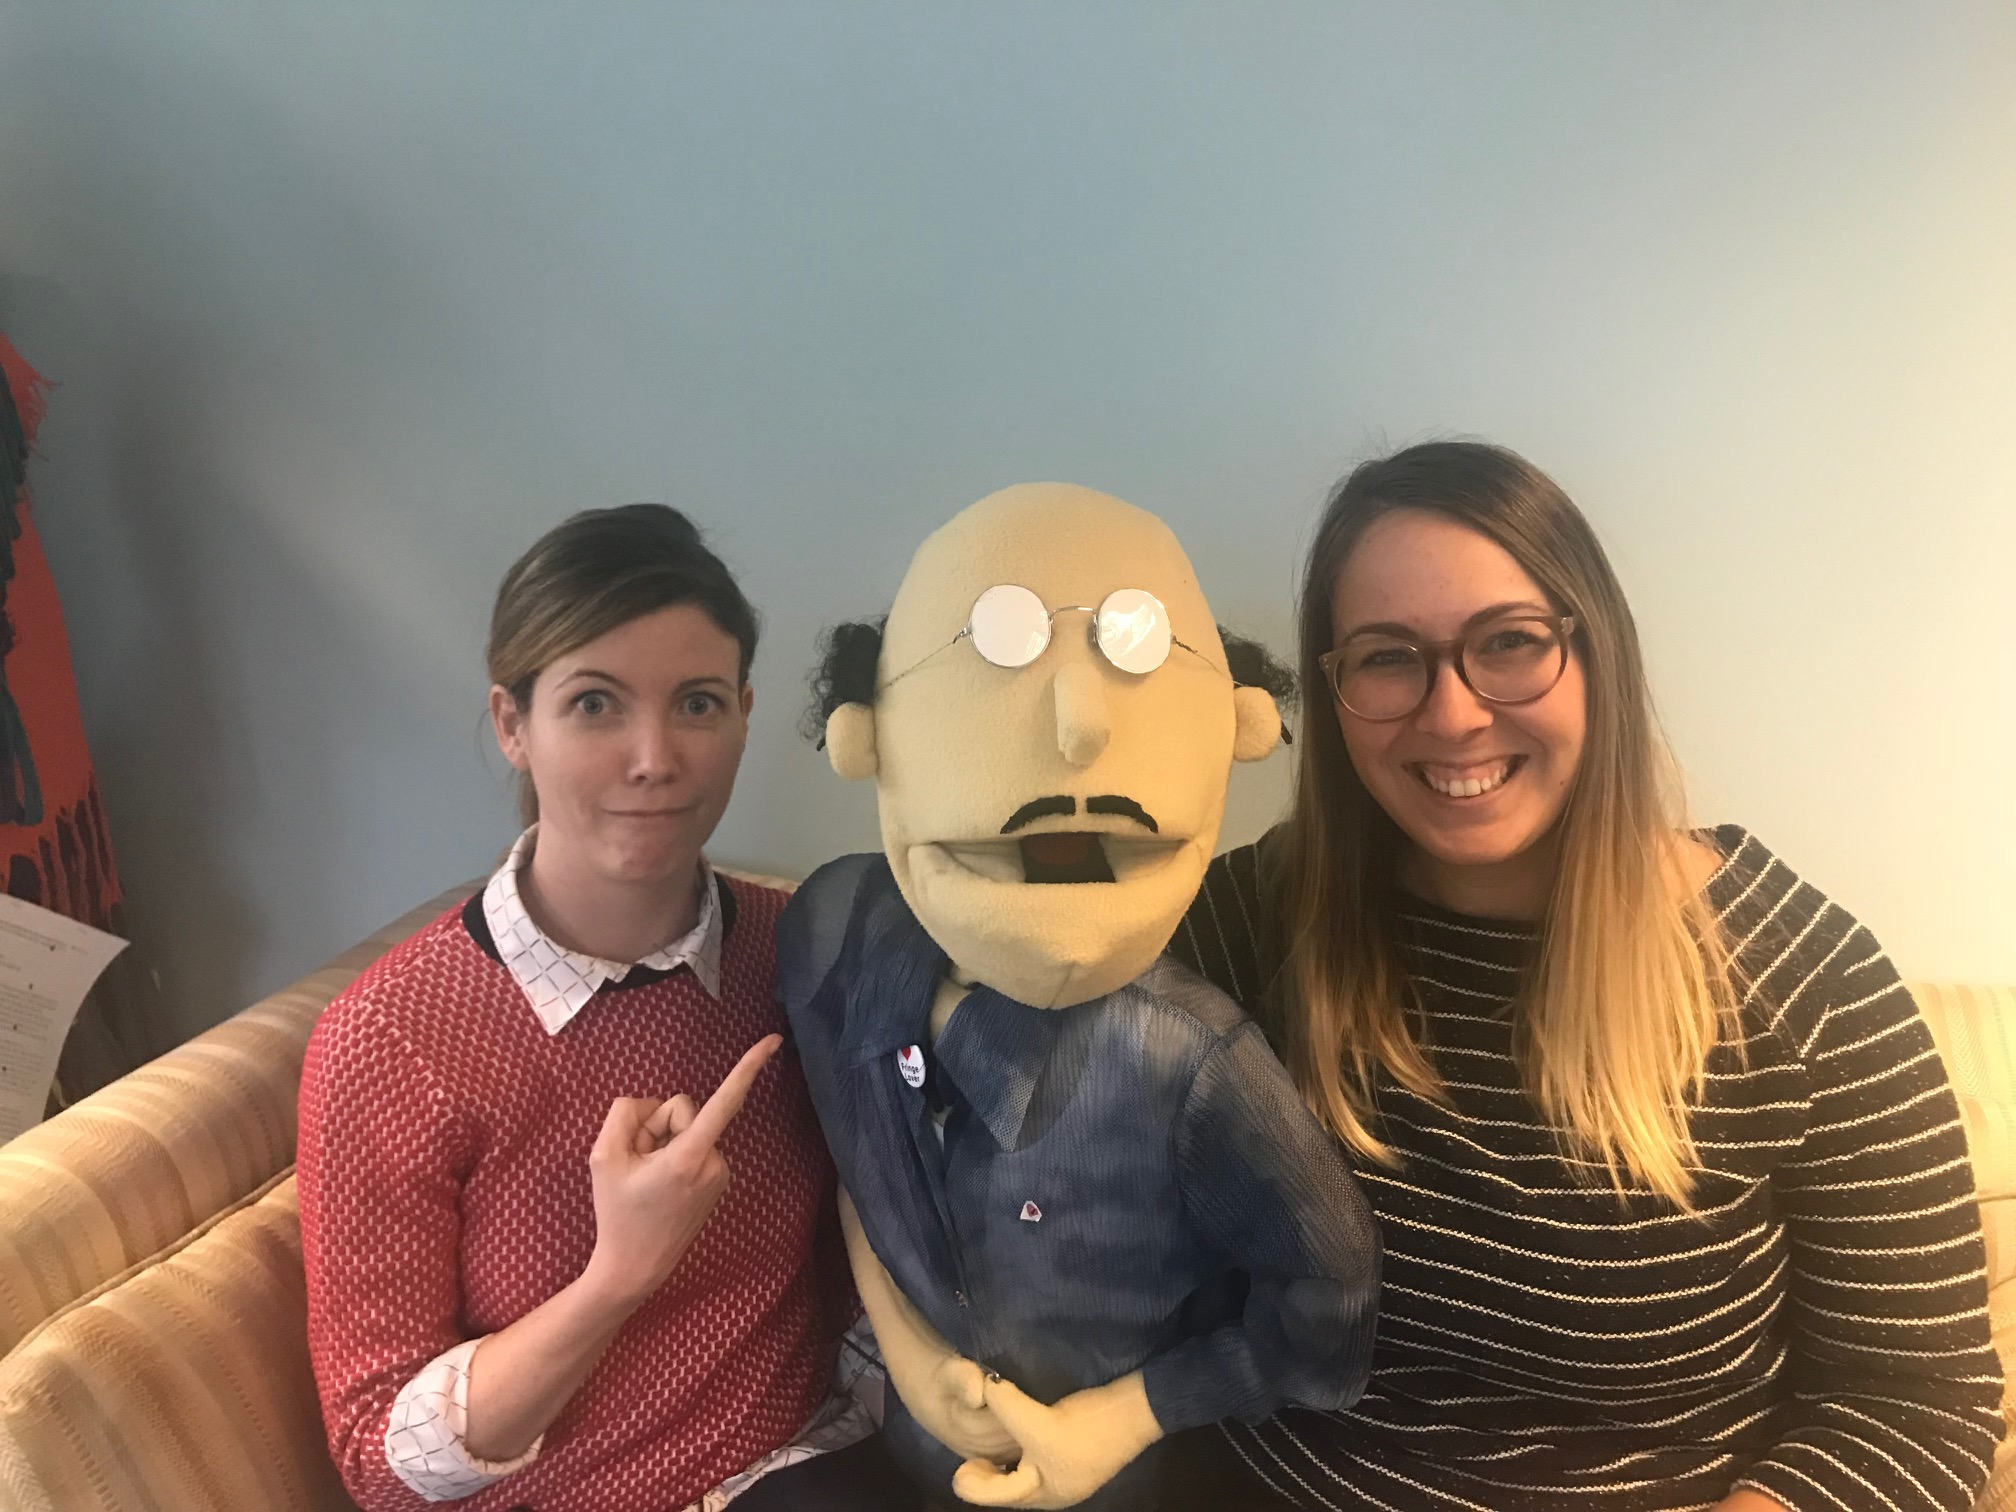 Jimmy (centre) welcomes Chelsey (left) and Samantha (right) to the Fringe team.